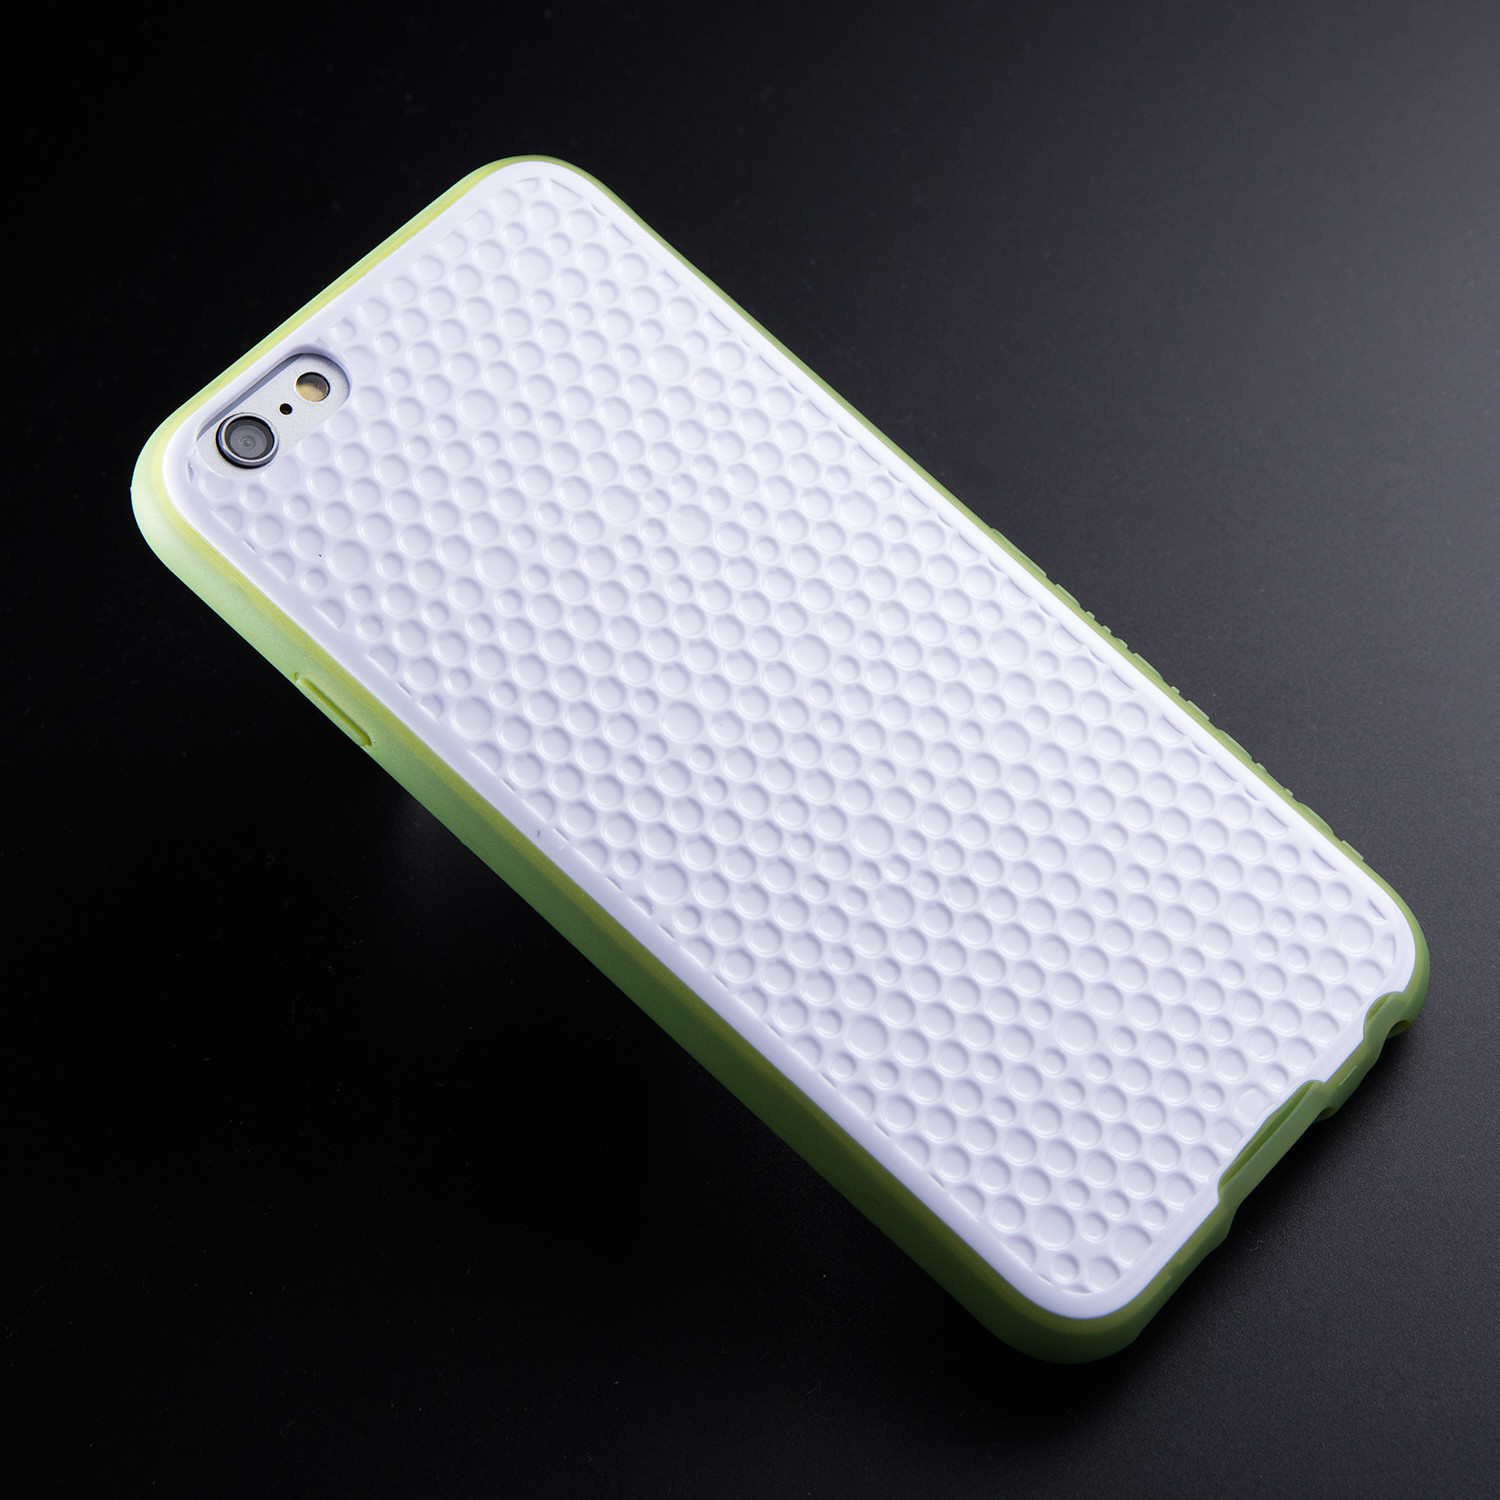 100% authentic 4d0c3 dd0fa Golf Ball Backed Case // iPhone 6/6s (Coral) - Birdie Cage - Touch ...